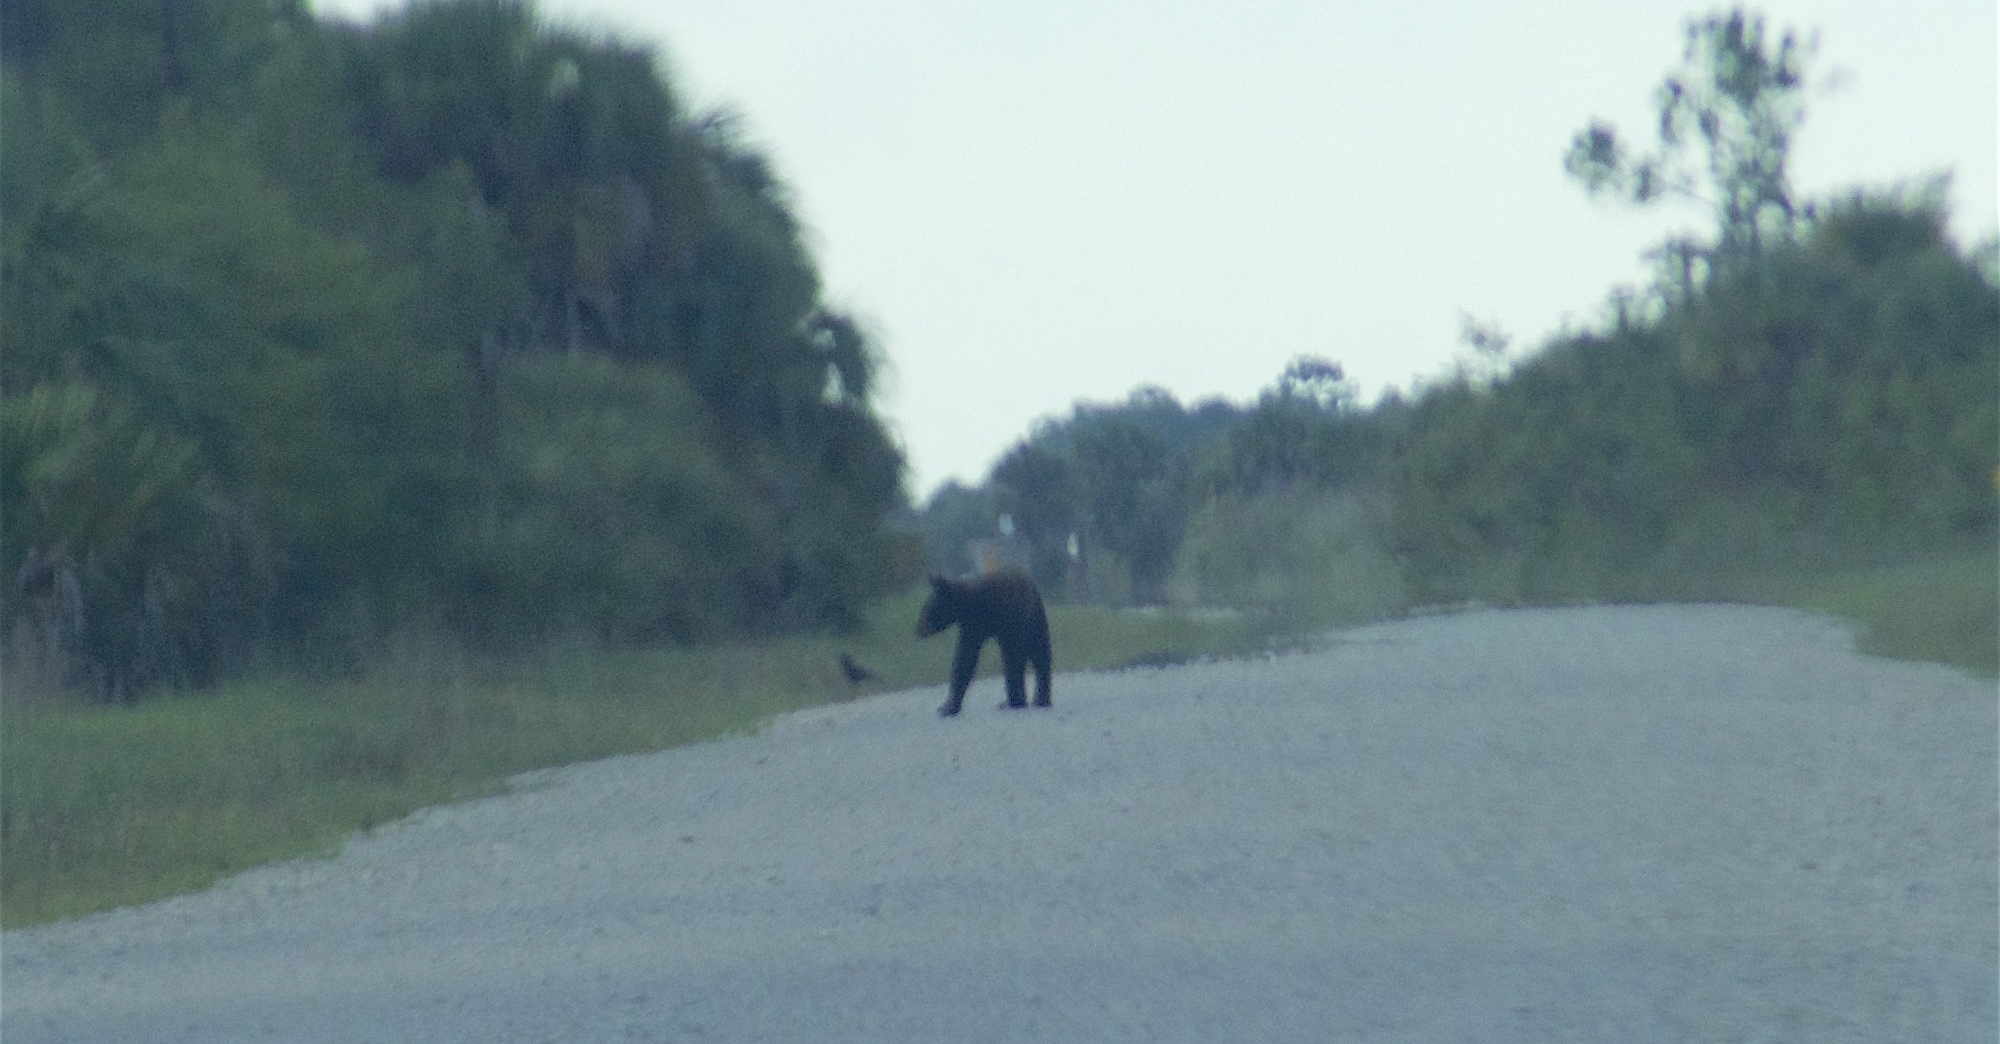 DUSK, ON A MISTY EVENING, WE DROVE BACK TO WHERE WE HAD SEEN BEAR SCAT IN THE MORNING. SURE ENOUGH, WE FOUND OUR BEAR! BIG CYPRESS NATIONAL WILDLIFE REFUGE. CAR SAFARI! IMAGE: ©ROBERTA KRAVETTE